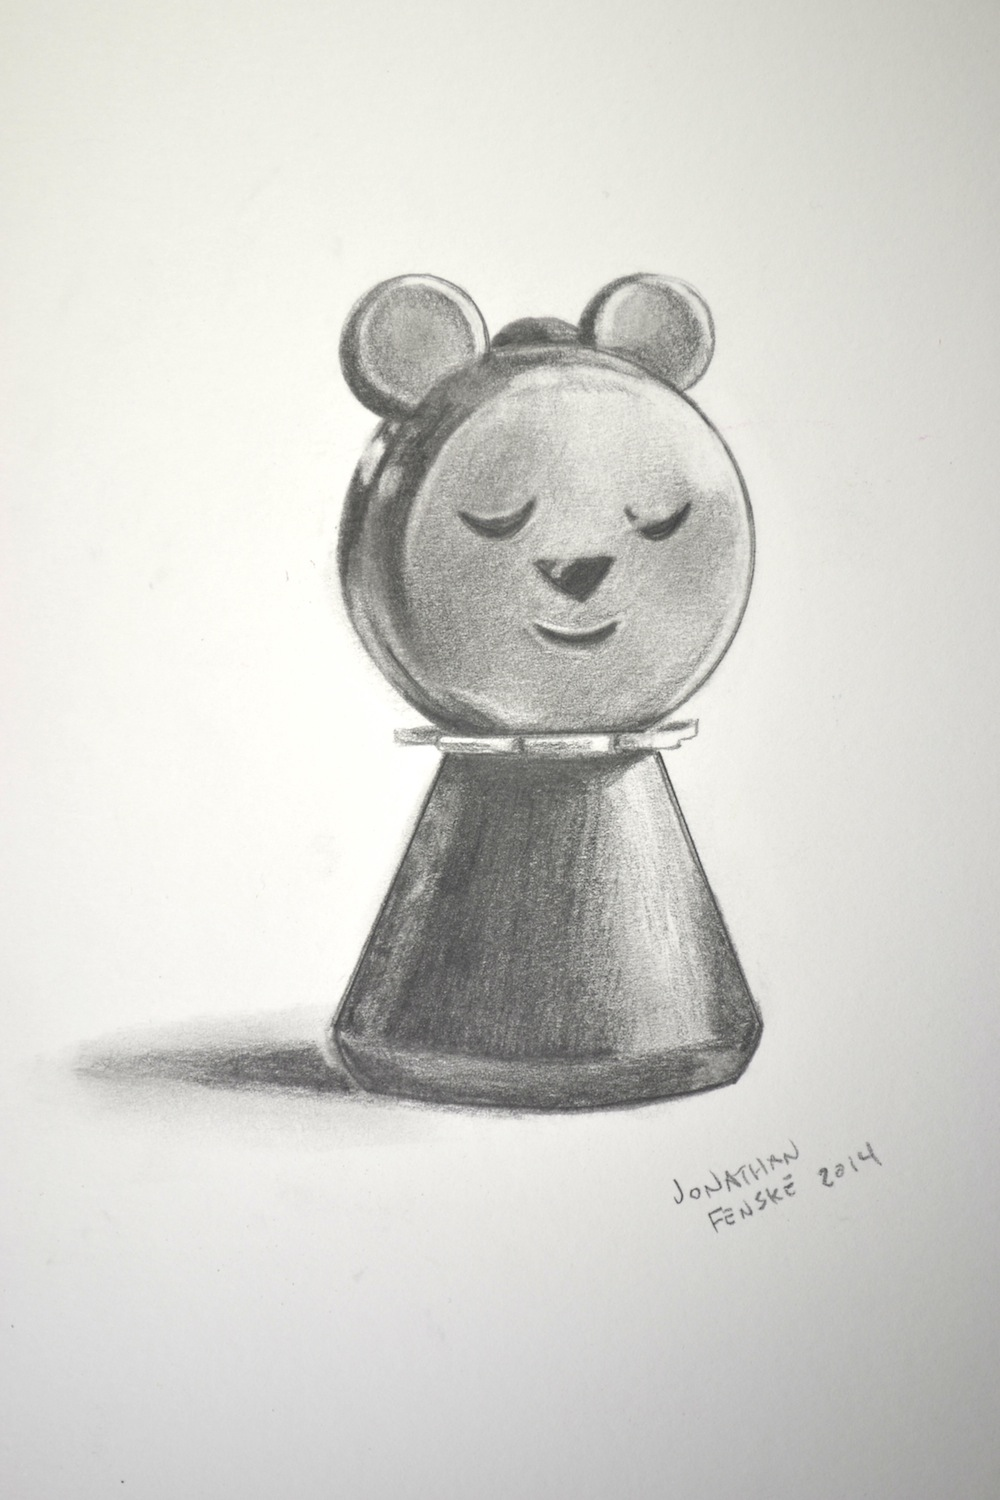 Denver artist Jonathan Fenske's drawing of a bear from the Fisher Price Goldilocks playset